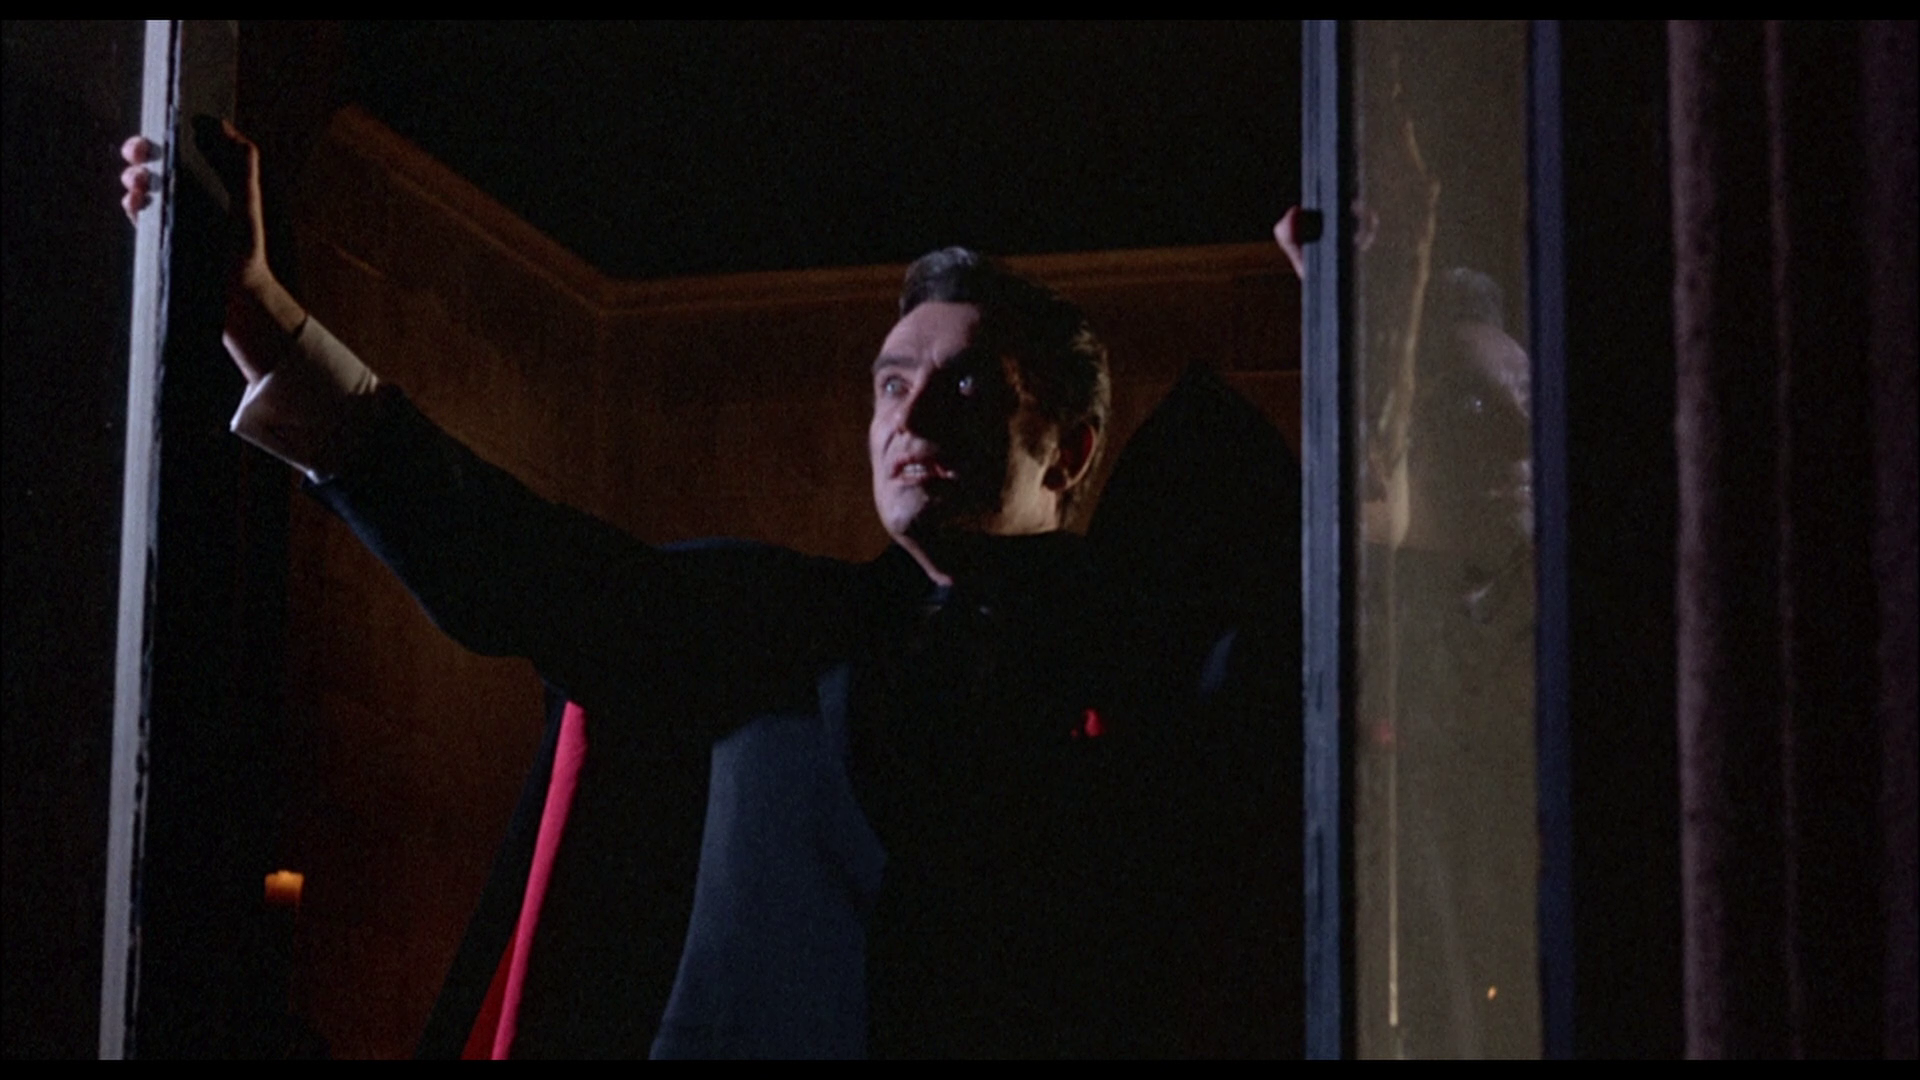 Count Yorga, Vampire (US Blu-ray review)